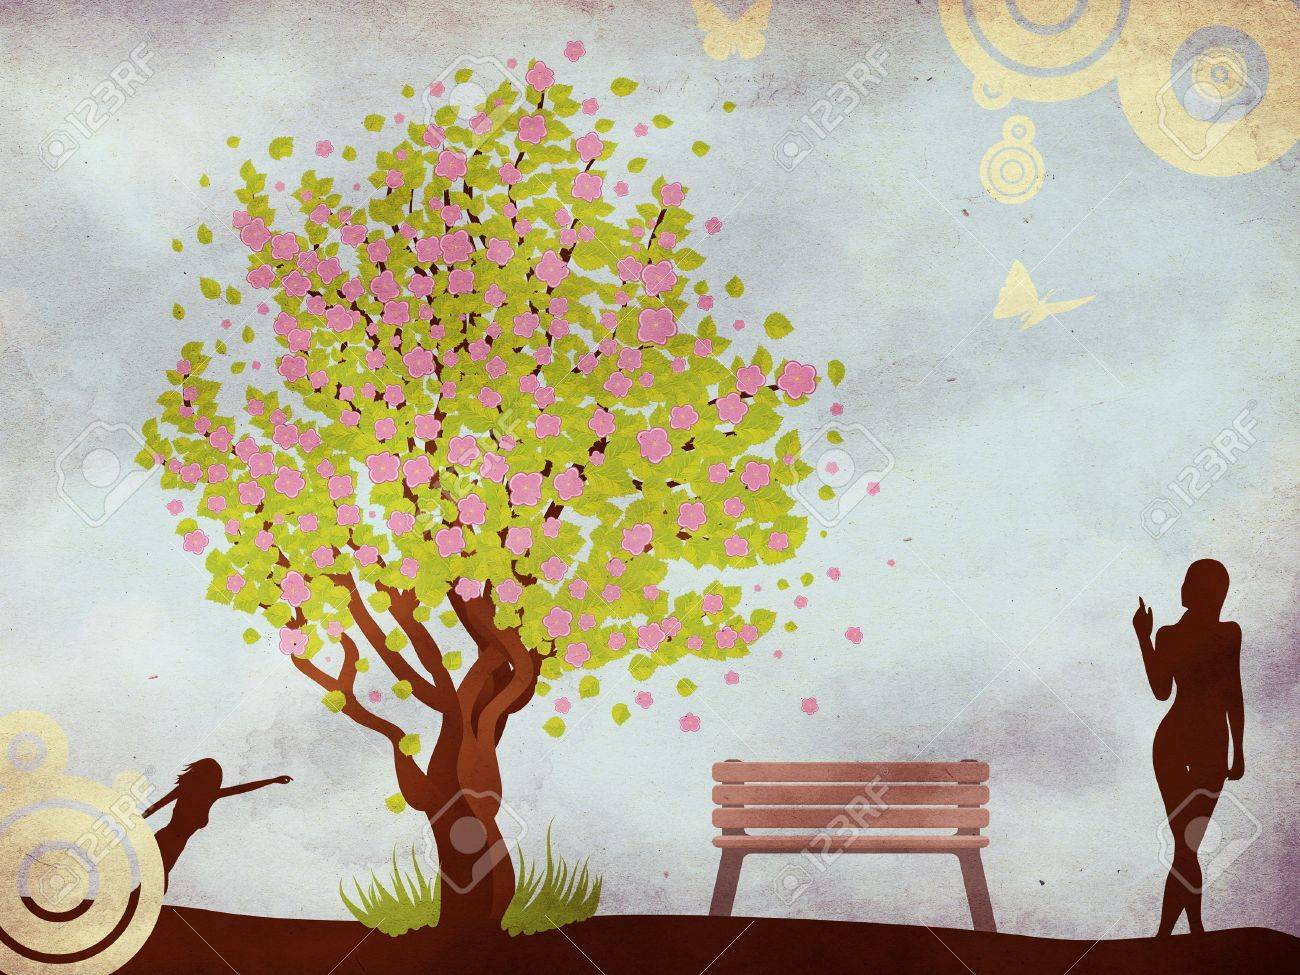 Illustration Of Cherry Blossom Tree, Bench And Woman On Grunge ...